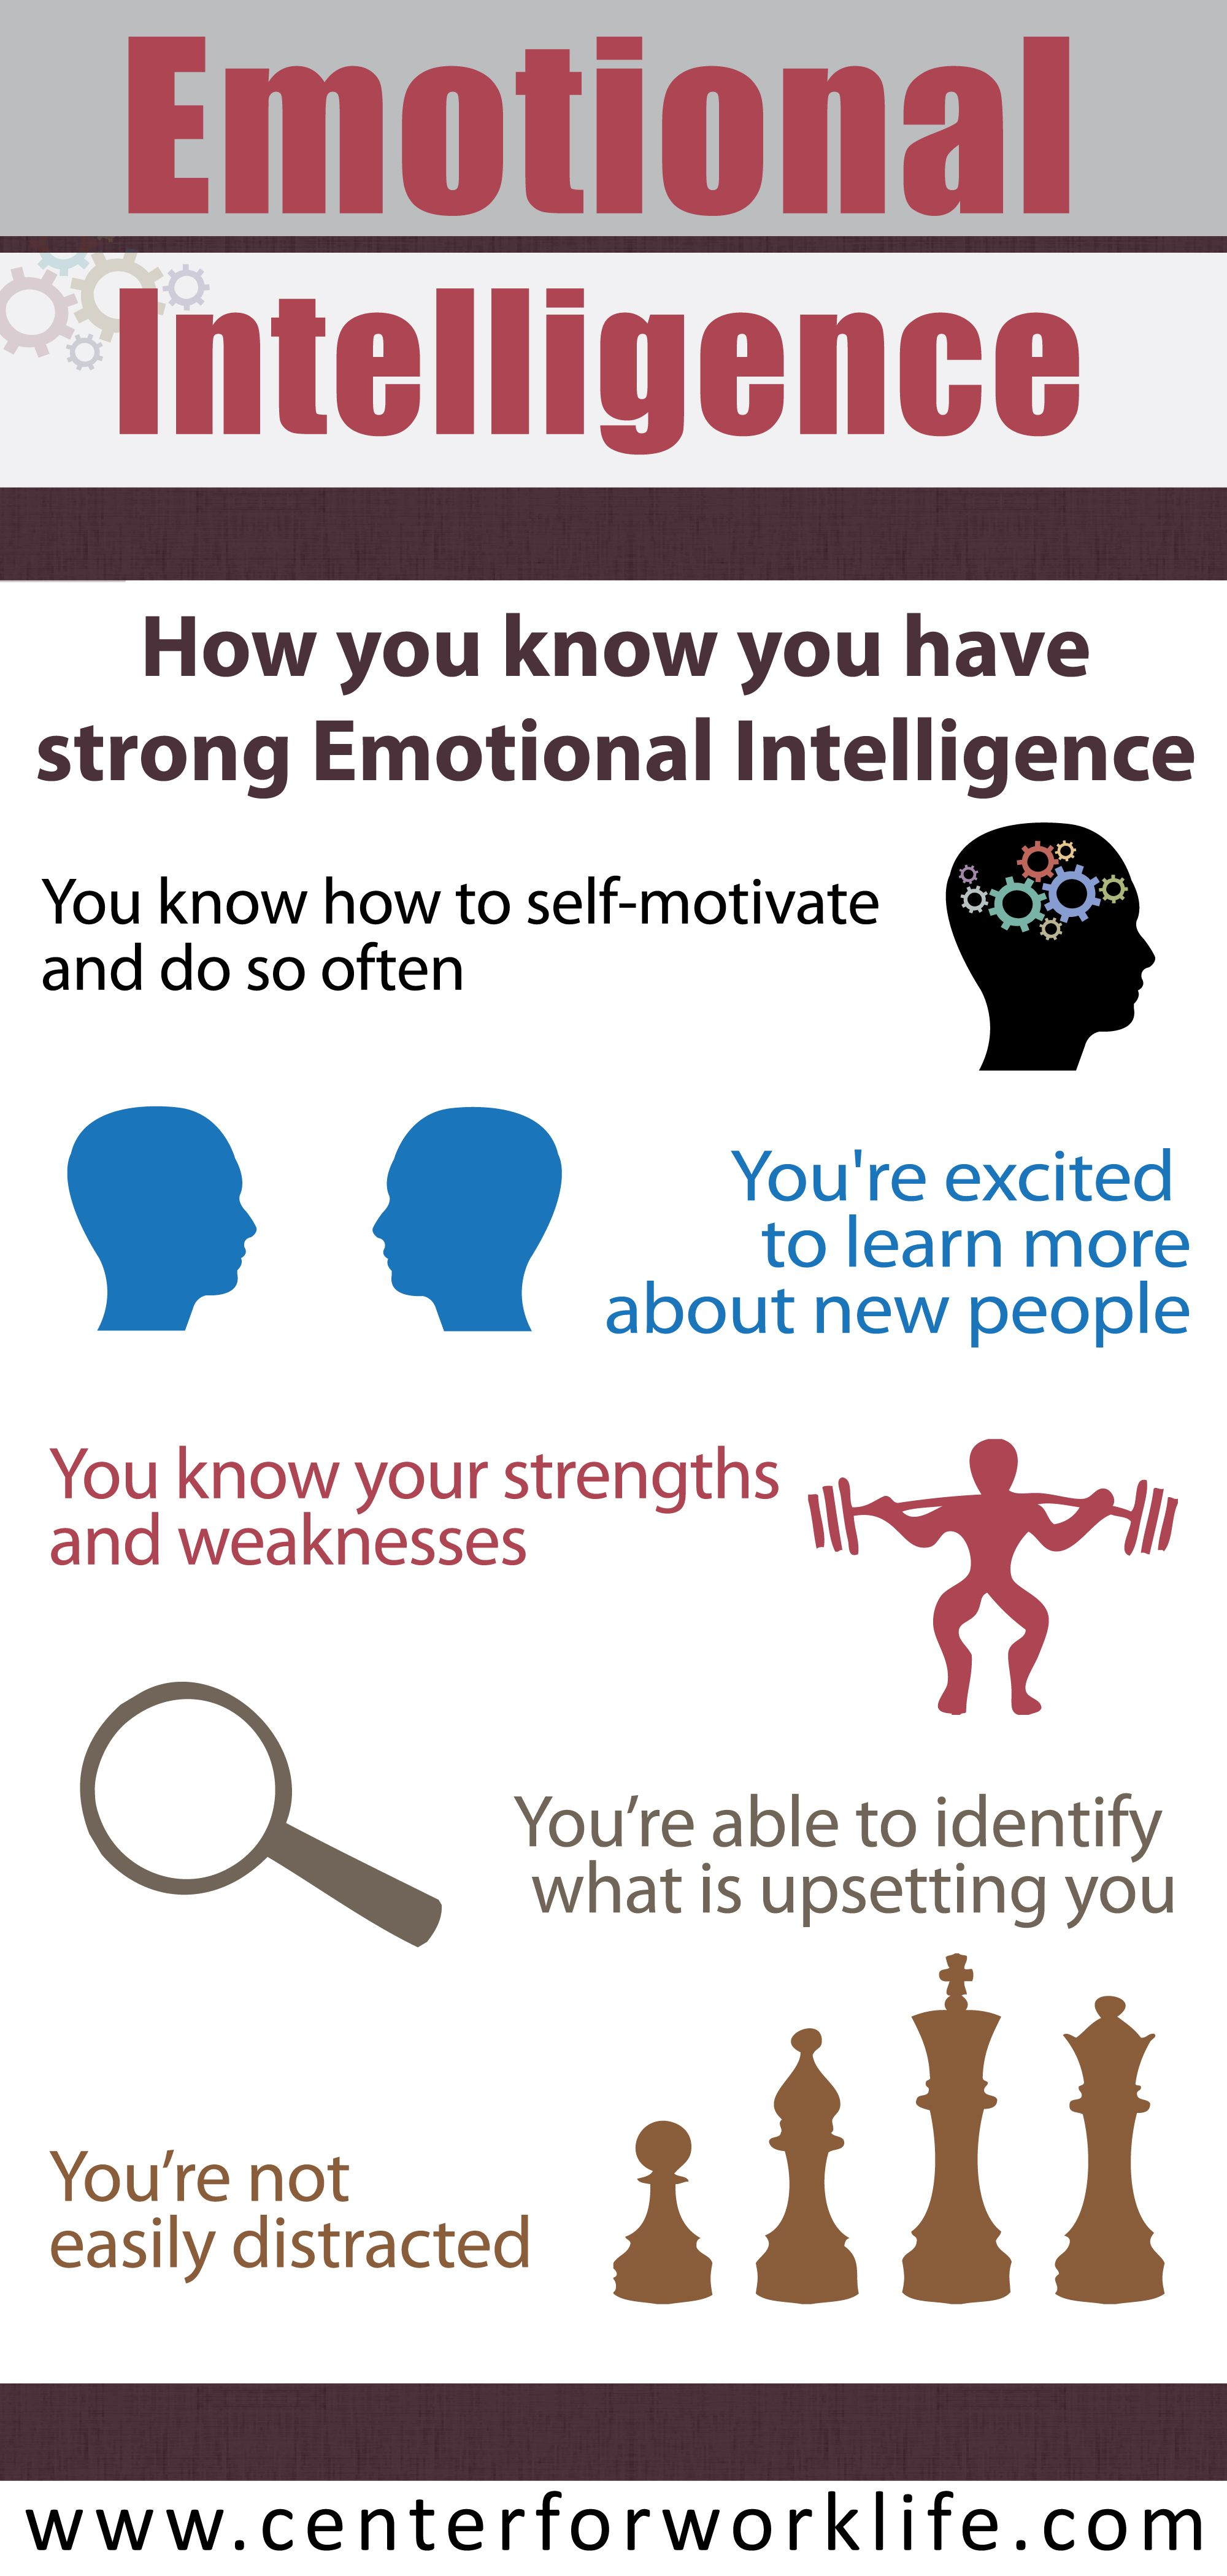 Can someone examine the concept of emotional intelligence and the reasons behind its development?